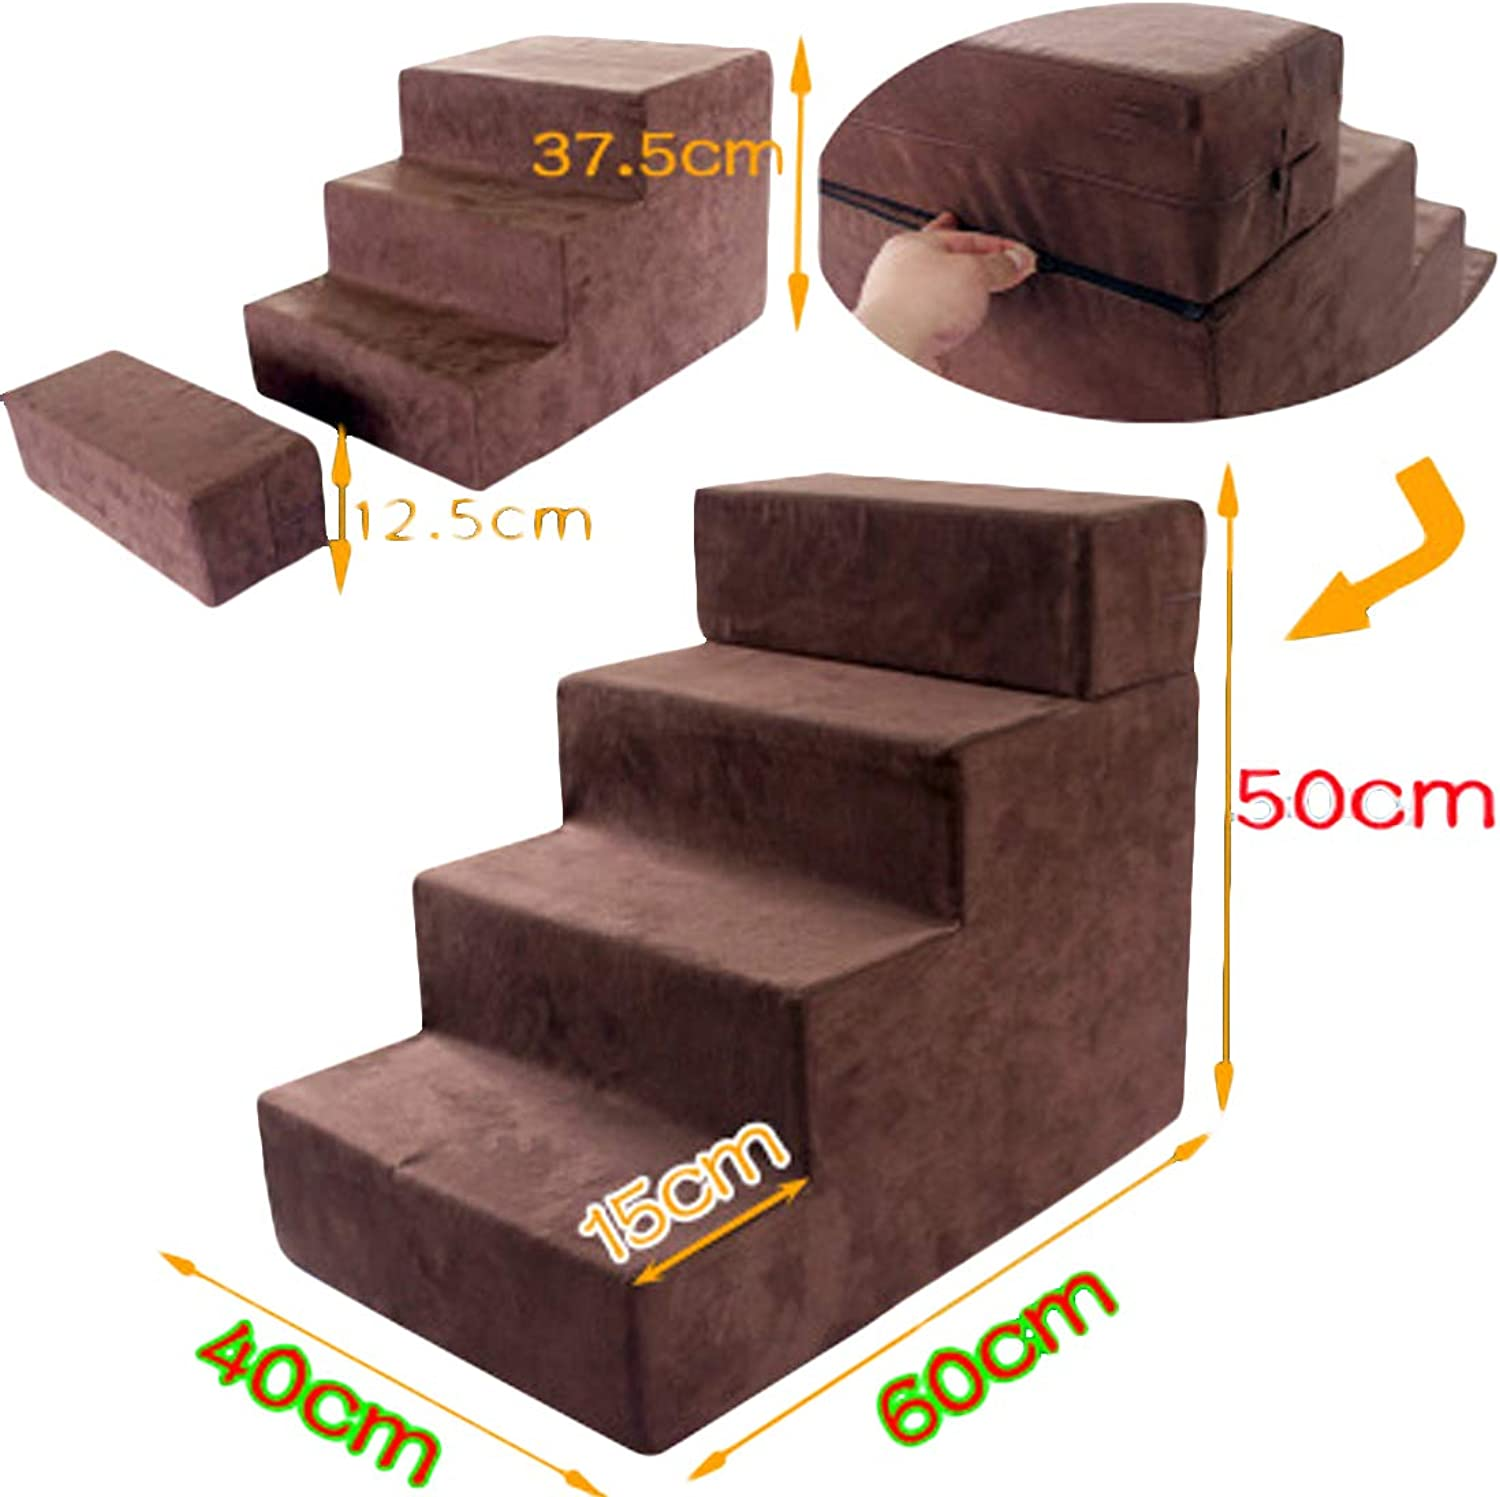 Zhyaj Dog Ramp for Bed dog Steps for High Bed Pet Stairs Cat Dog Climbing Stairs Small Dog 3 può essere assemblato in 4 Layer Va To Ladder Cotton Wool Family Favorite